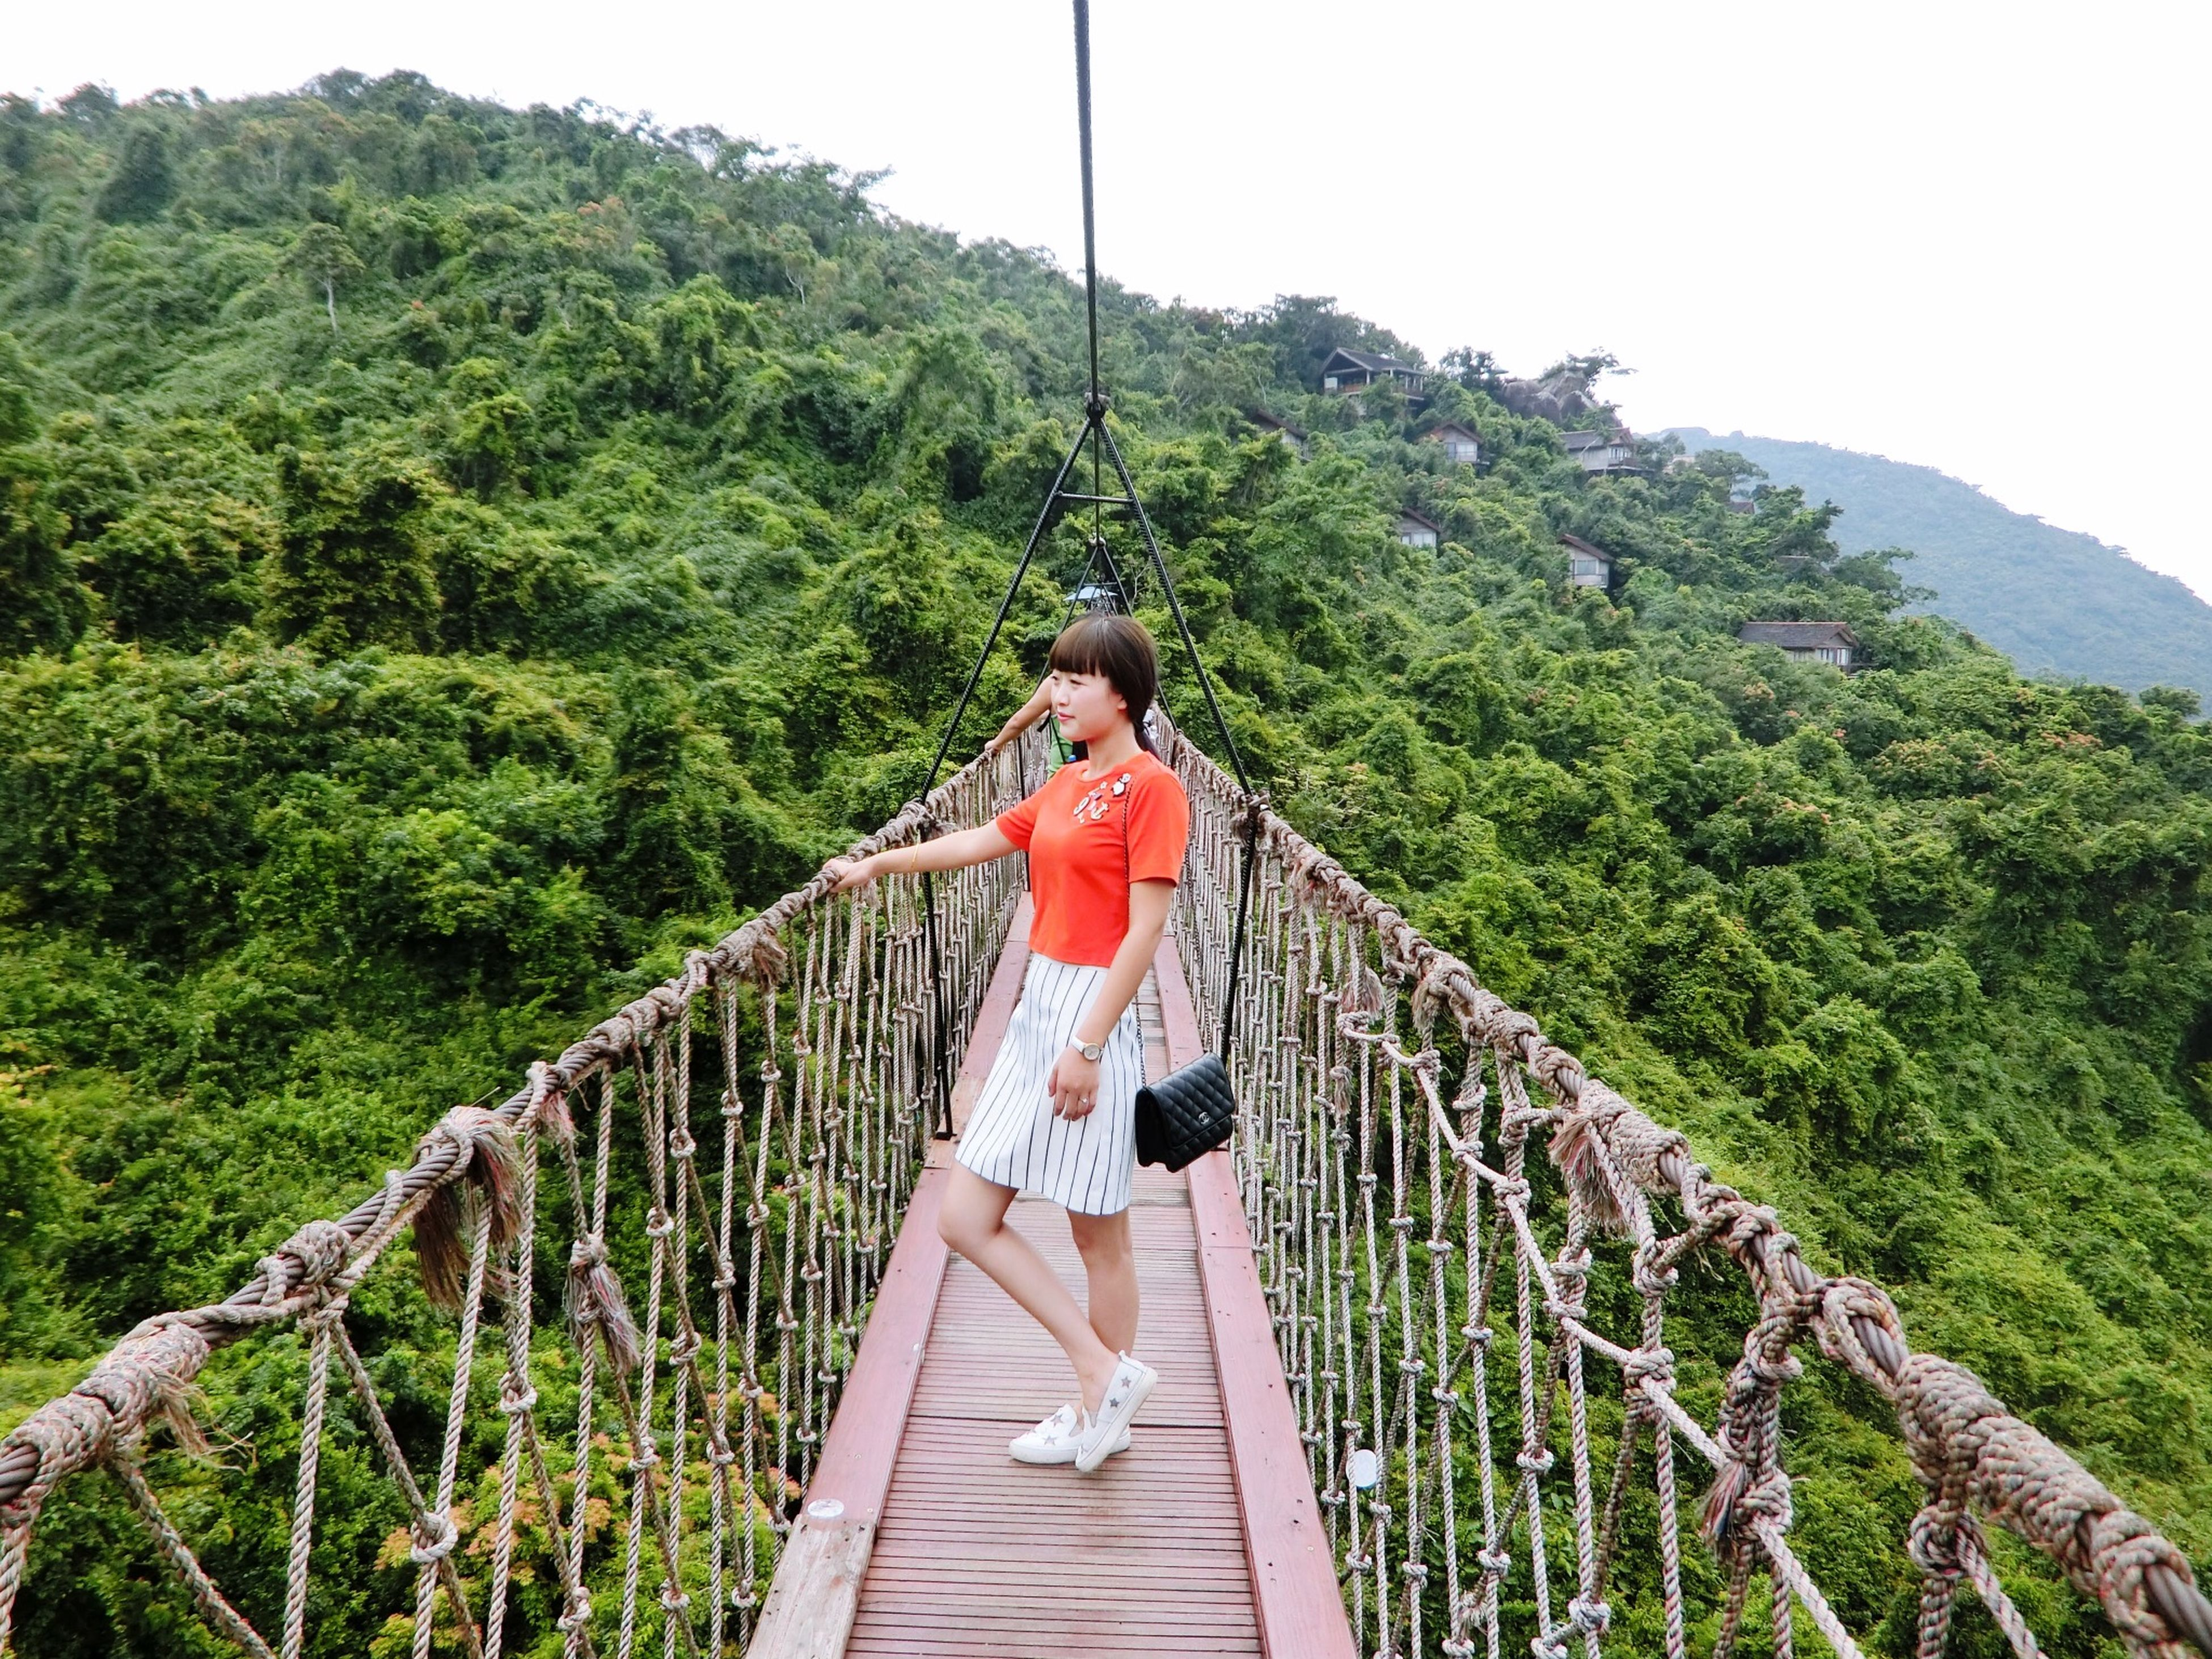 mountain, tree, railing, green color, footbridge, plant, nature, tranquility, built structure, growth, connection, forest, tranquil scene, bridge - man made structure, beauty in nature, mountain range, scenics, sky